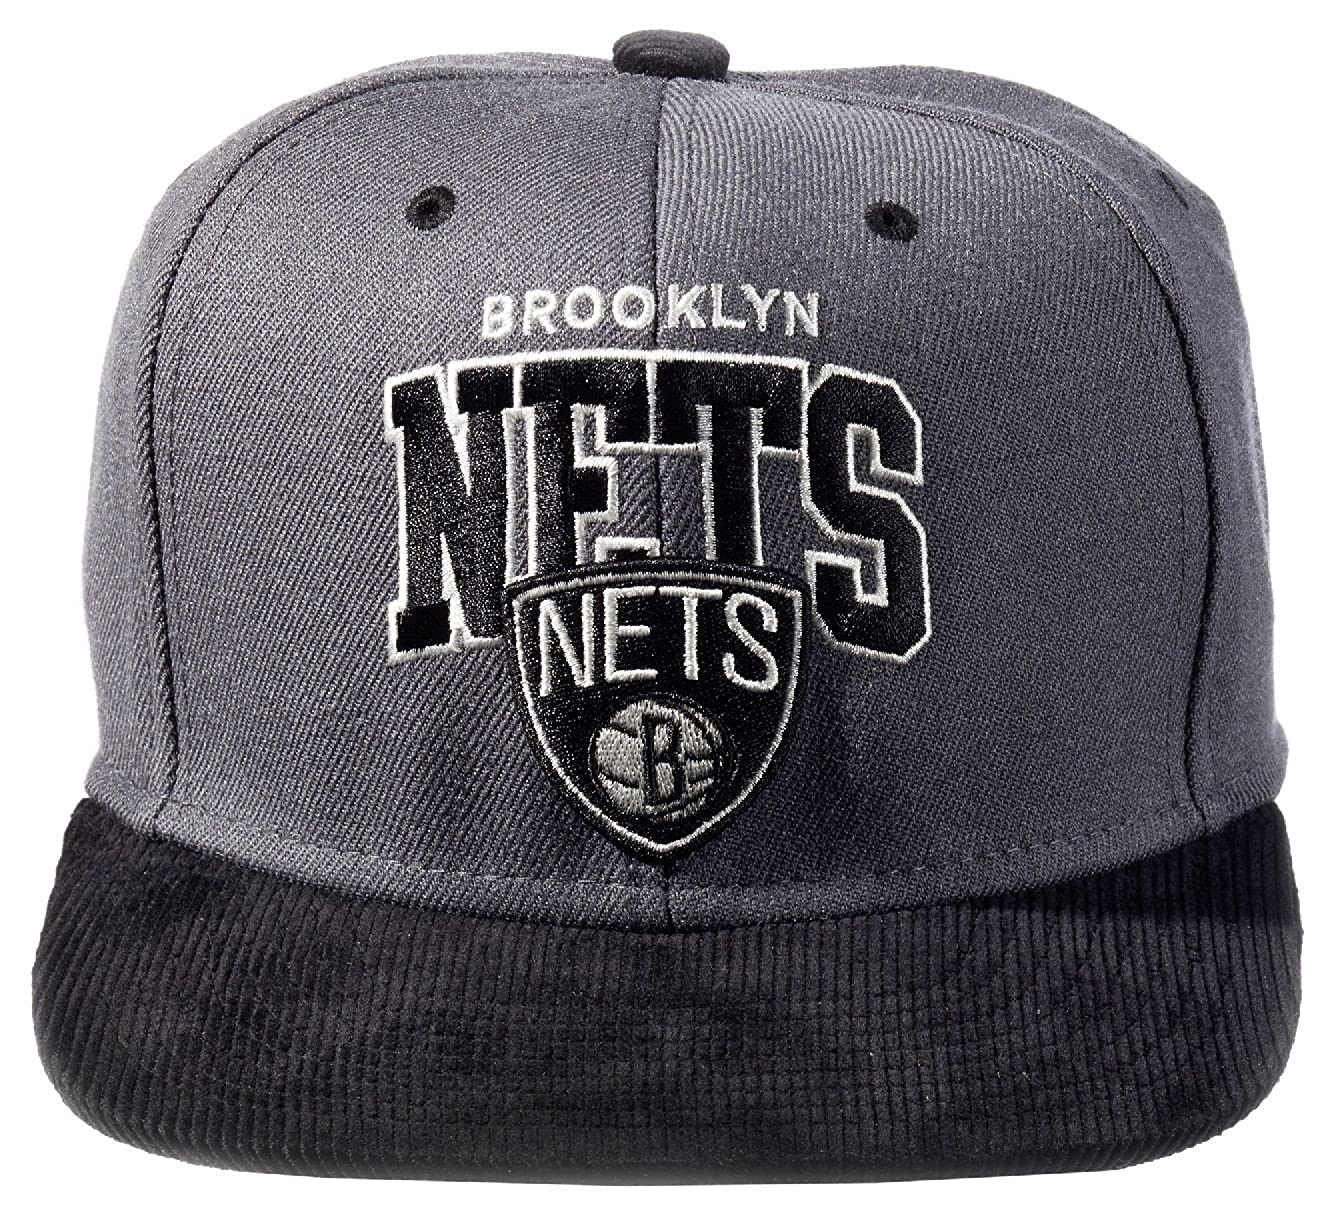 Mitchell & Ness Bulls Brooklyn Nets Snapback scholer: Amazon.es ...